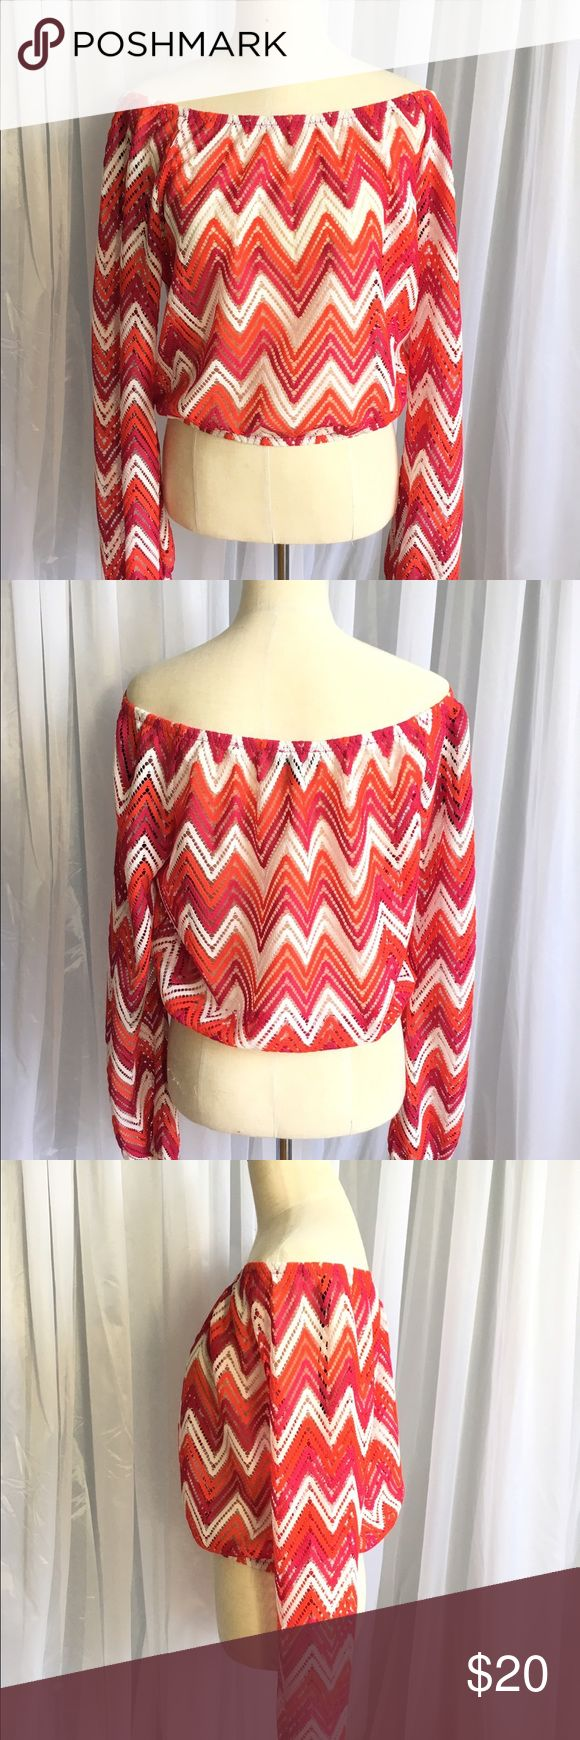 Bebe top Mesh off shoulder top with chevron pattern. Elastic band at waist. Looks perfect with white denim shorts! Gently worn in pristine condition. bebe Tops Blouses